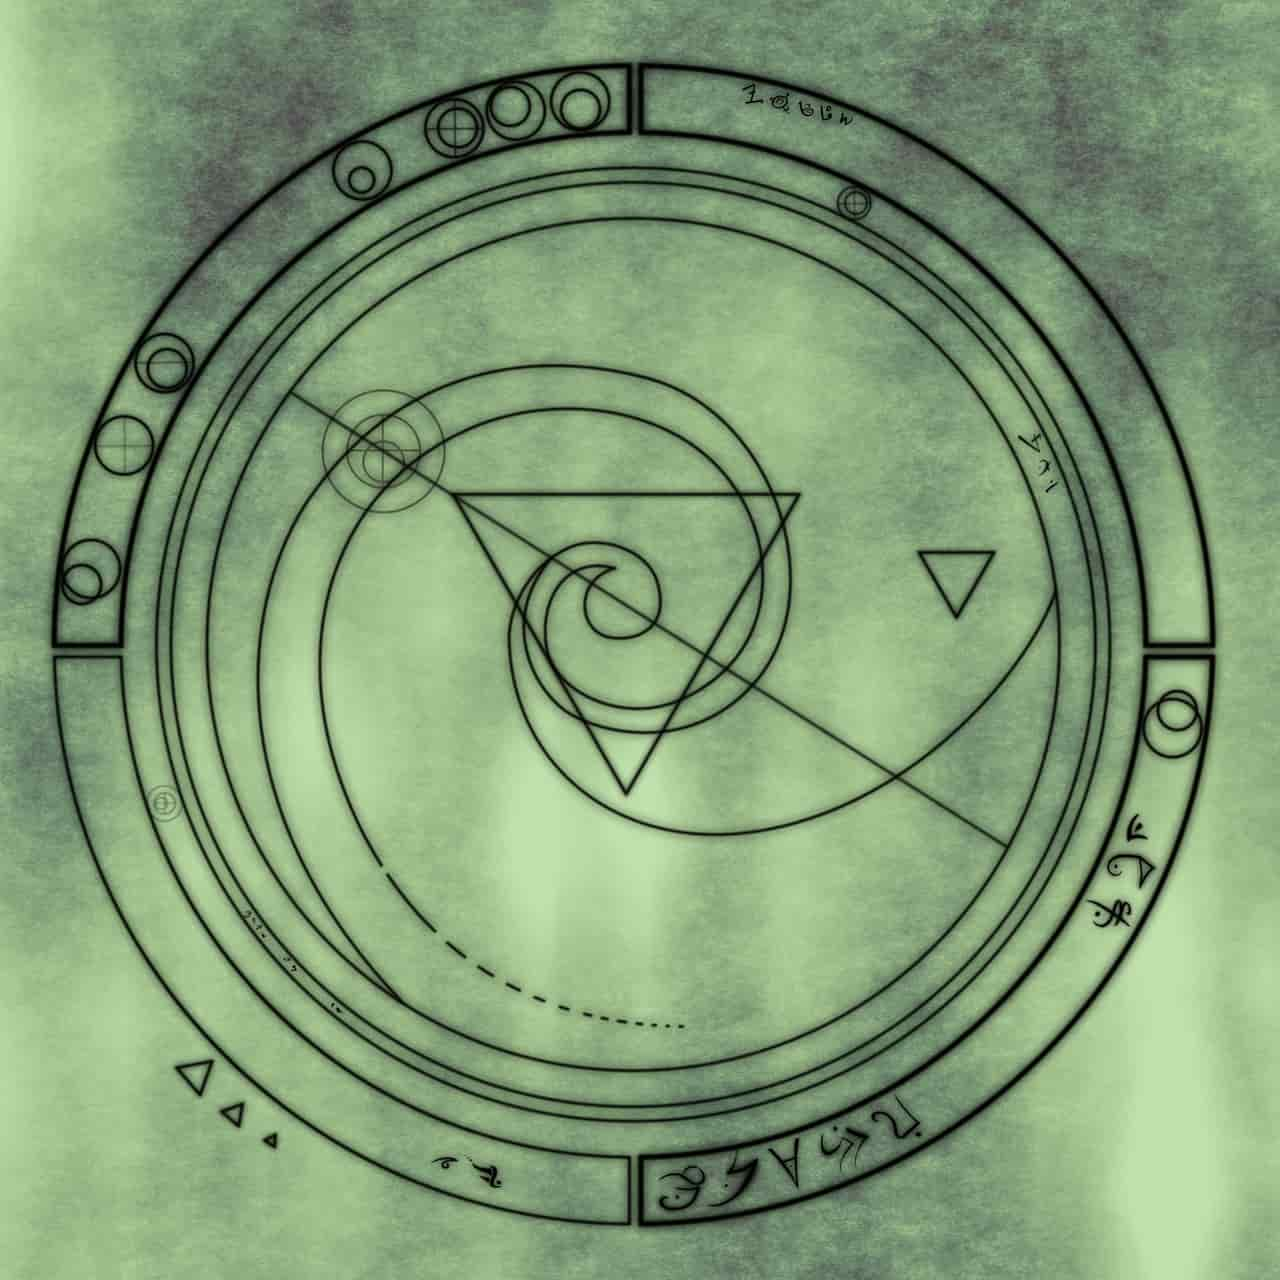 Image of a symbol that represents dissolution stage in spiritual alchemy